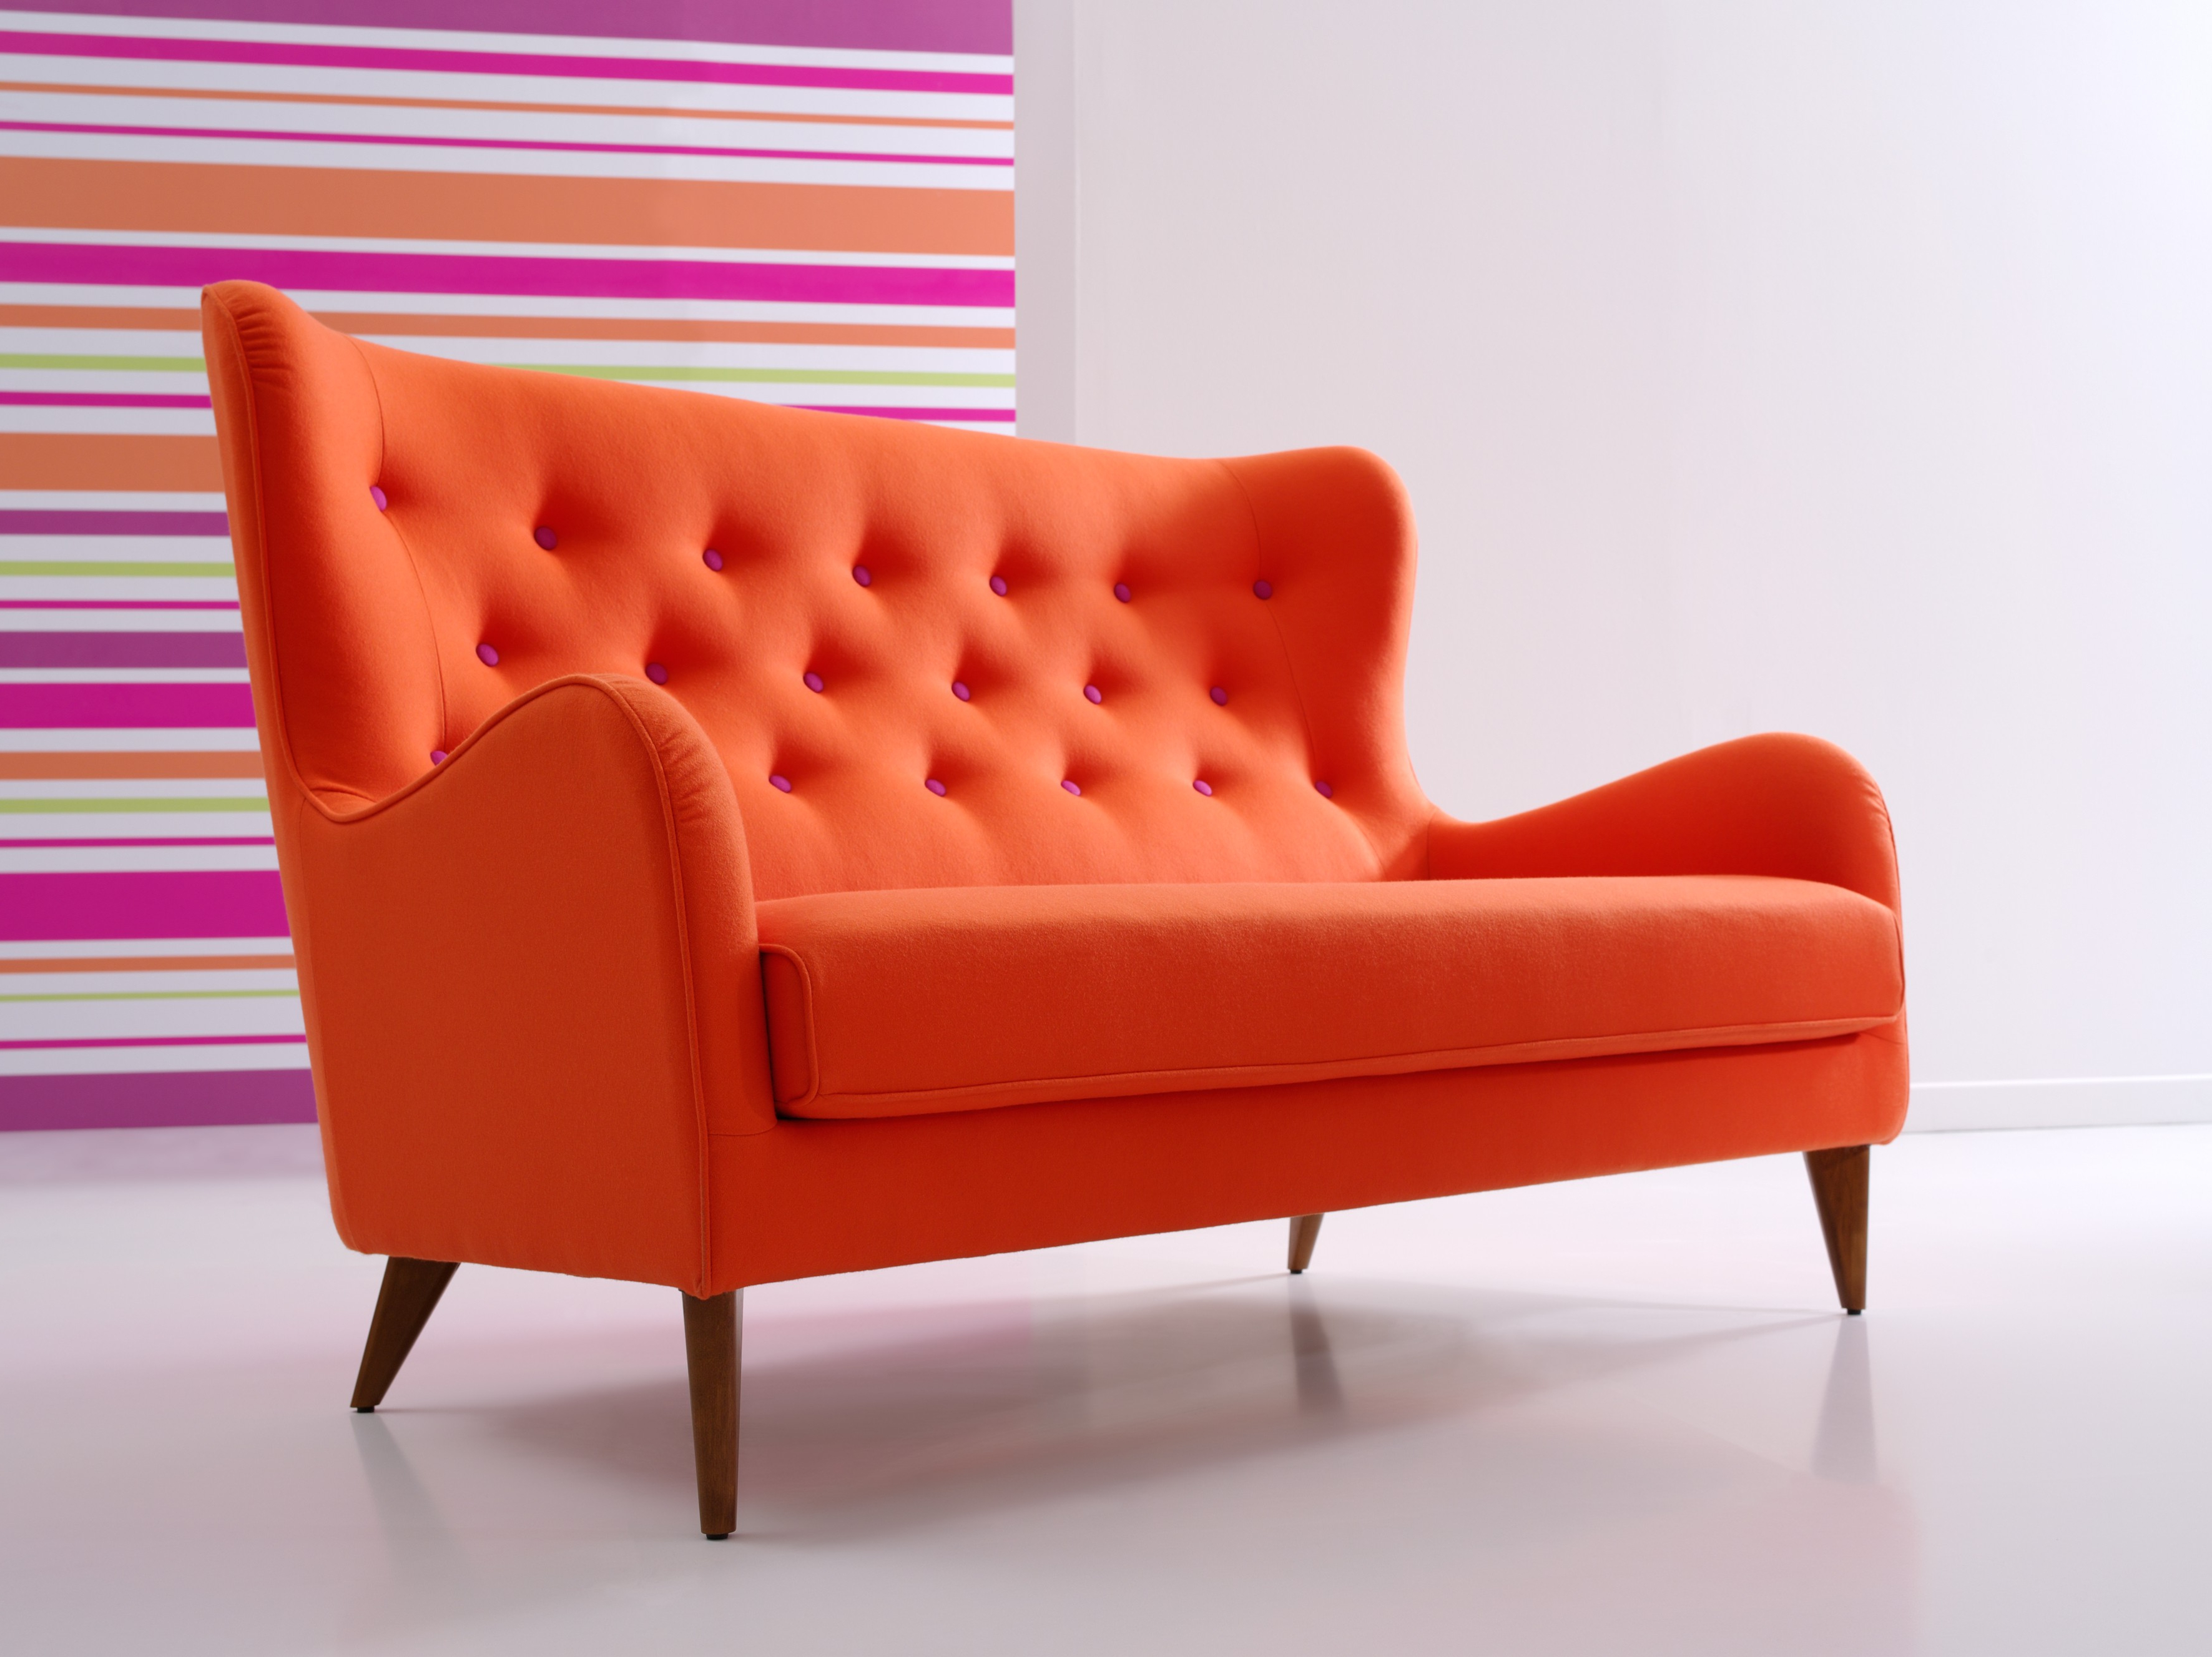 Preferred Sofa With Romantic Modern Color Combine Curve Arm And Backrest Plus With Orange Sofa Chairs (Gallery 11 of 20)